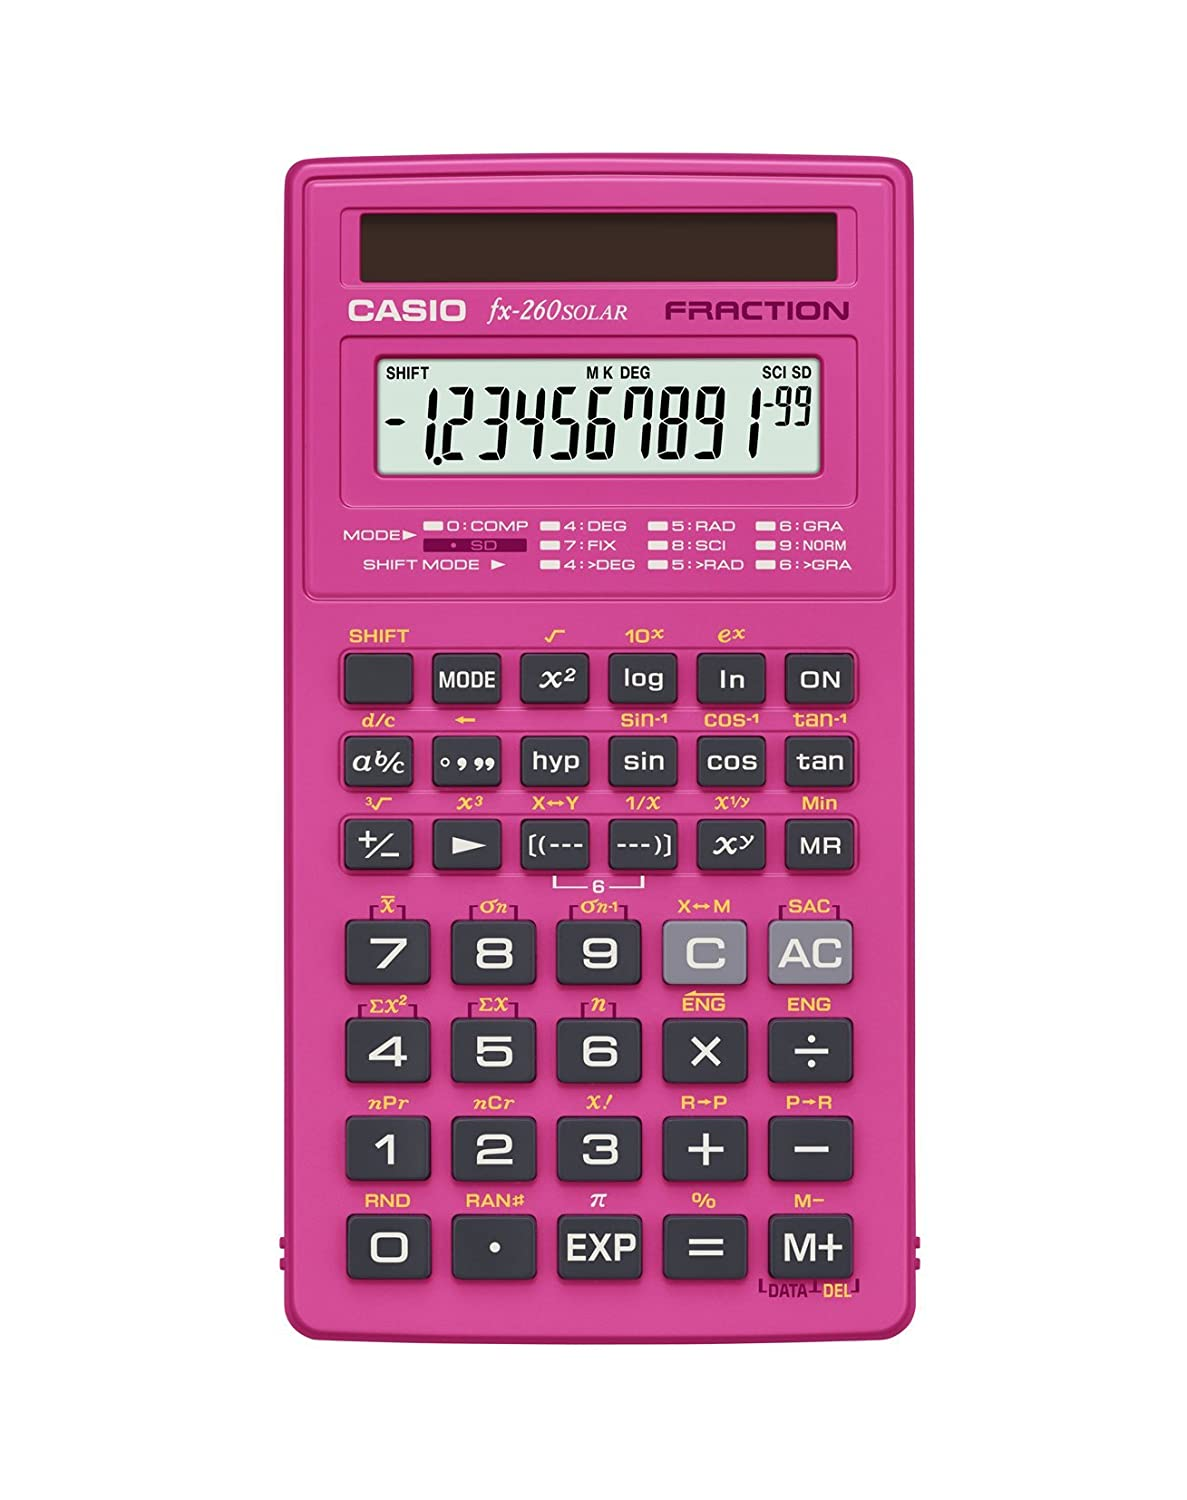 amazon com casio fx 260 solar scientific calculator black electronics rh amazon com Casio Exilim User Manual casio exilim n78 manual